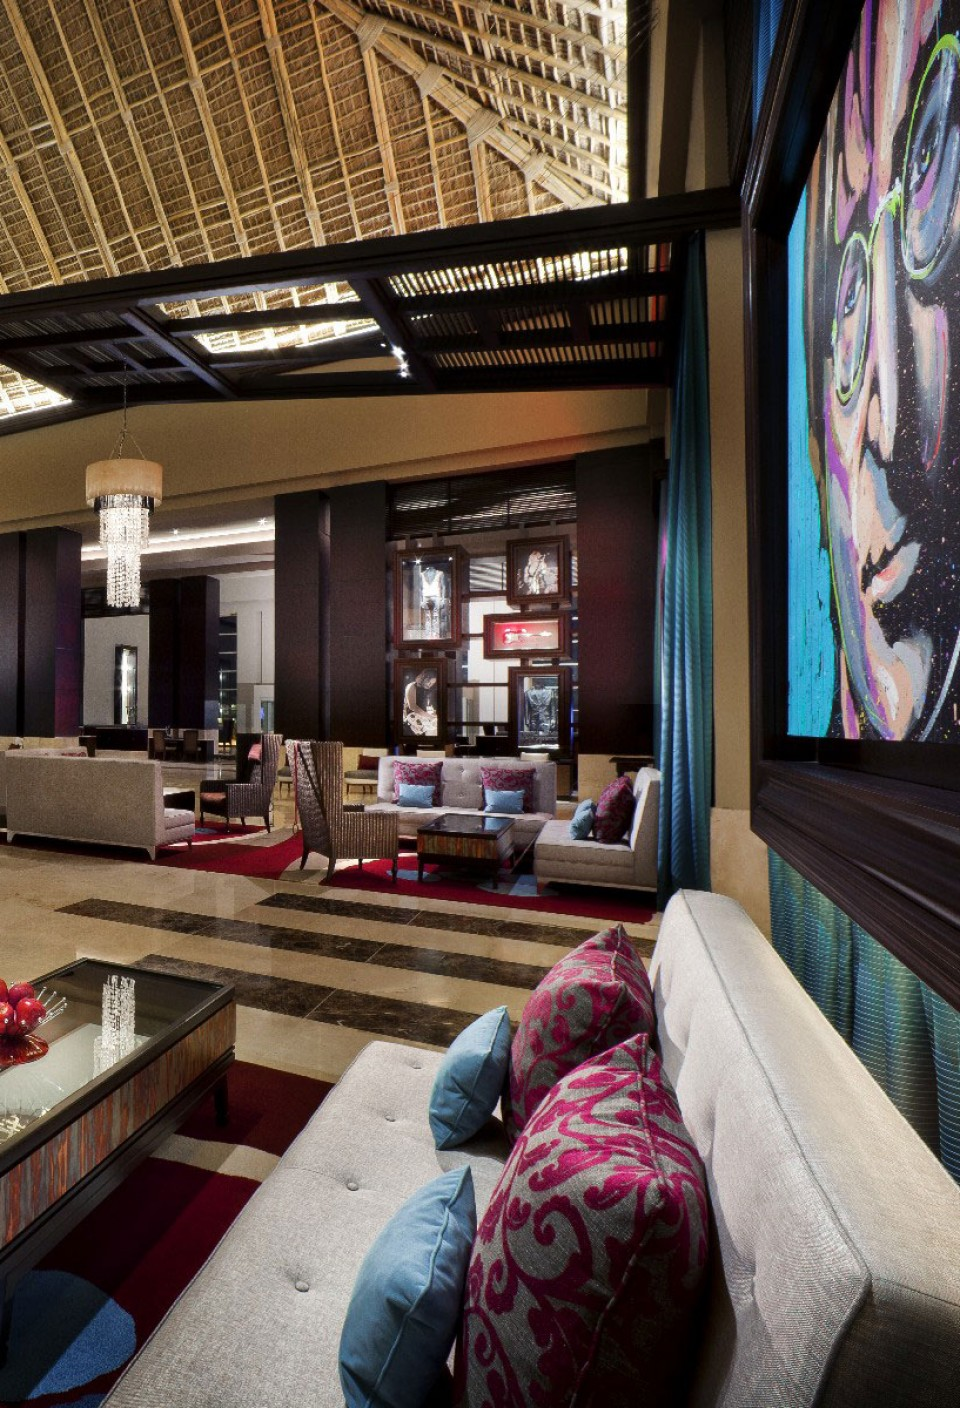 The Gettys Interior Design Team Converted An Existing Resorts Neutral Palette Into Energetic Hard Rock Hotel And Casino By Layering Vibrant Colors